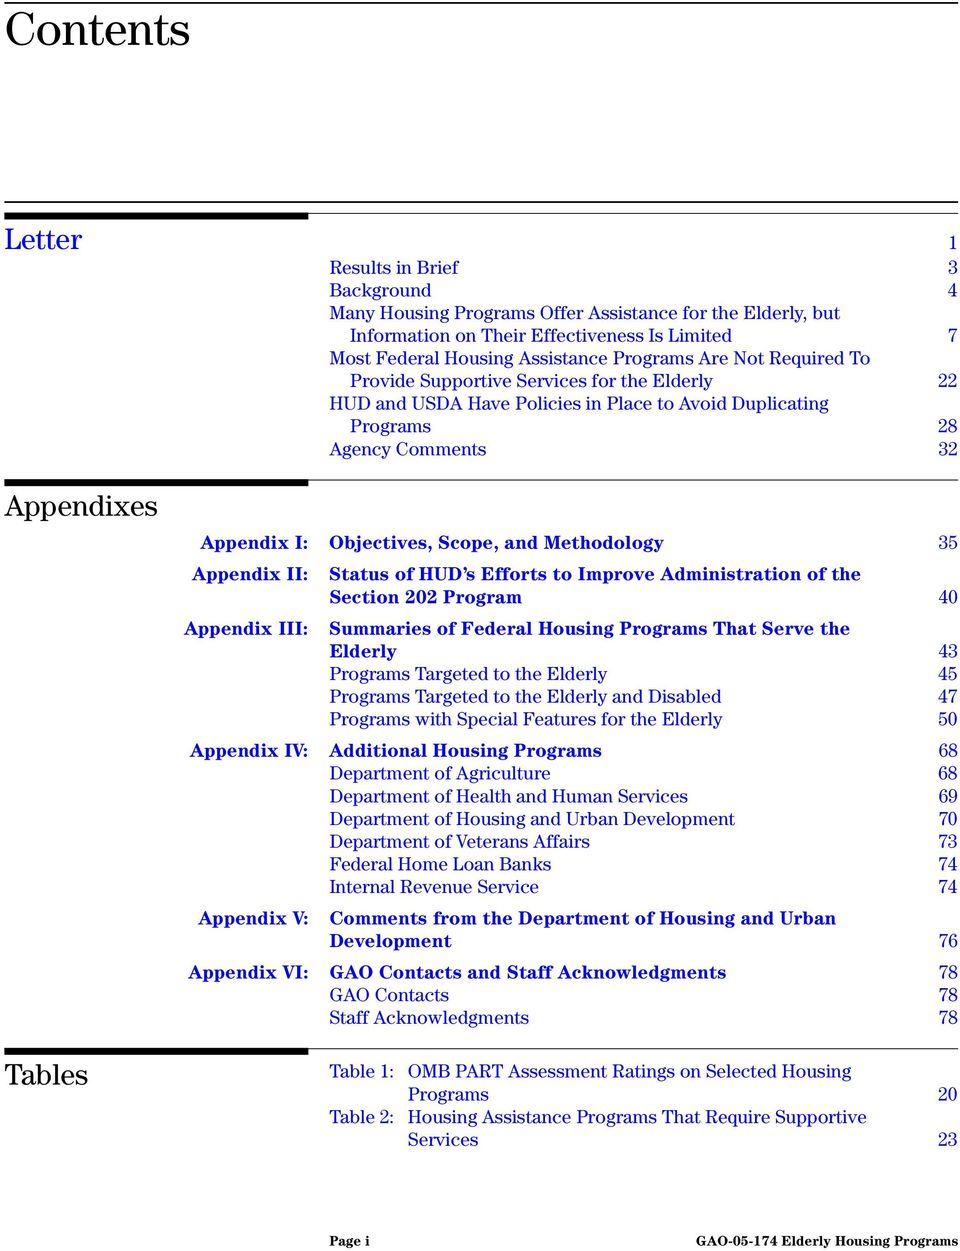 Scope, and Methodology 35 Appendix II: Status of HUD s Efforts to Improve Administration of the Section 202 Program 40 Appendix III: Summaries of Federal Housing Programs That Serve the Elderly 43